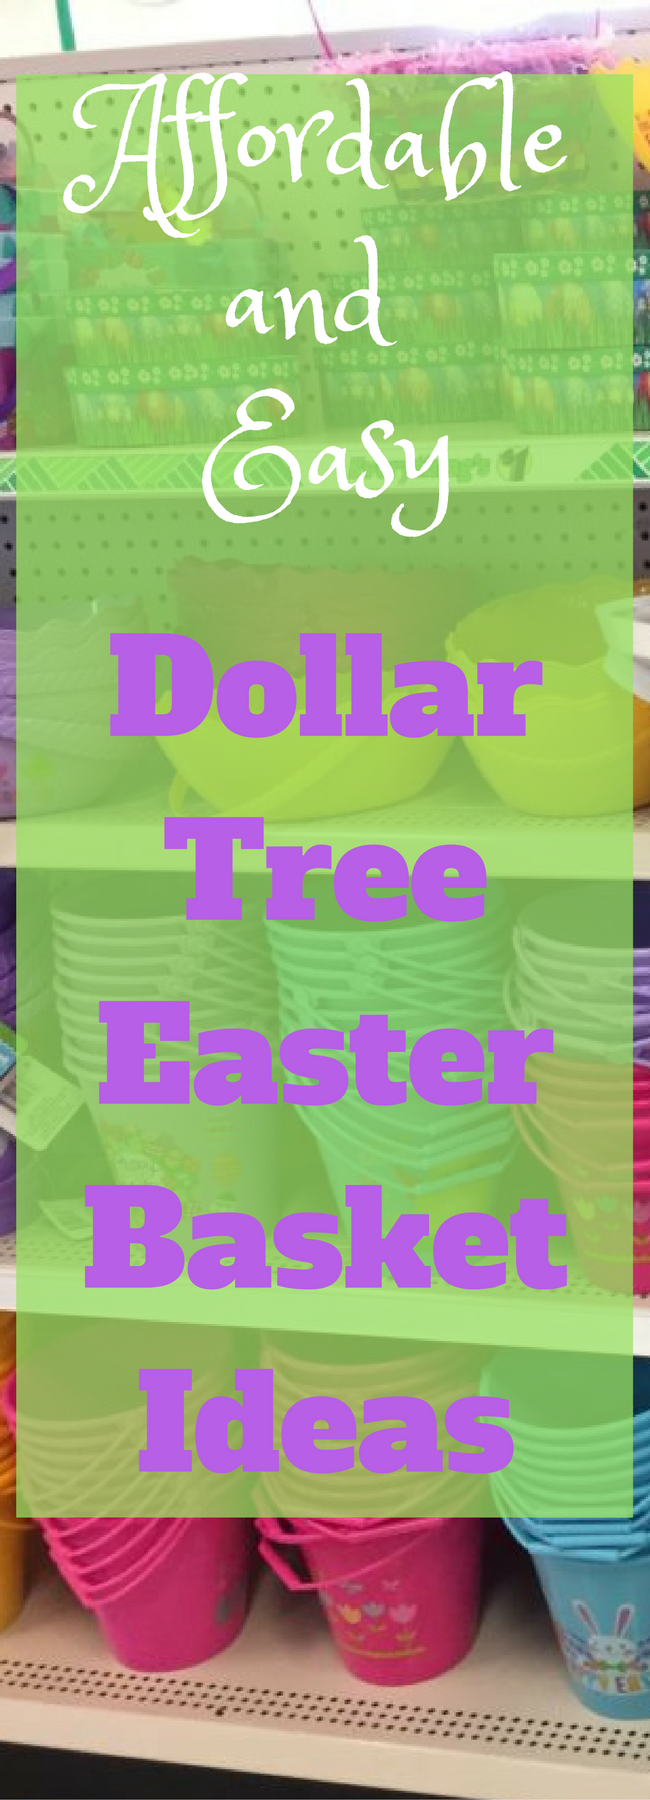 hung-basket-boy-easter-idea-teen